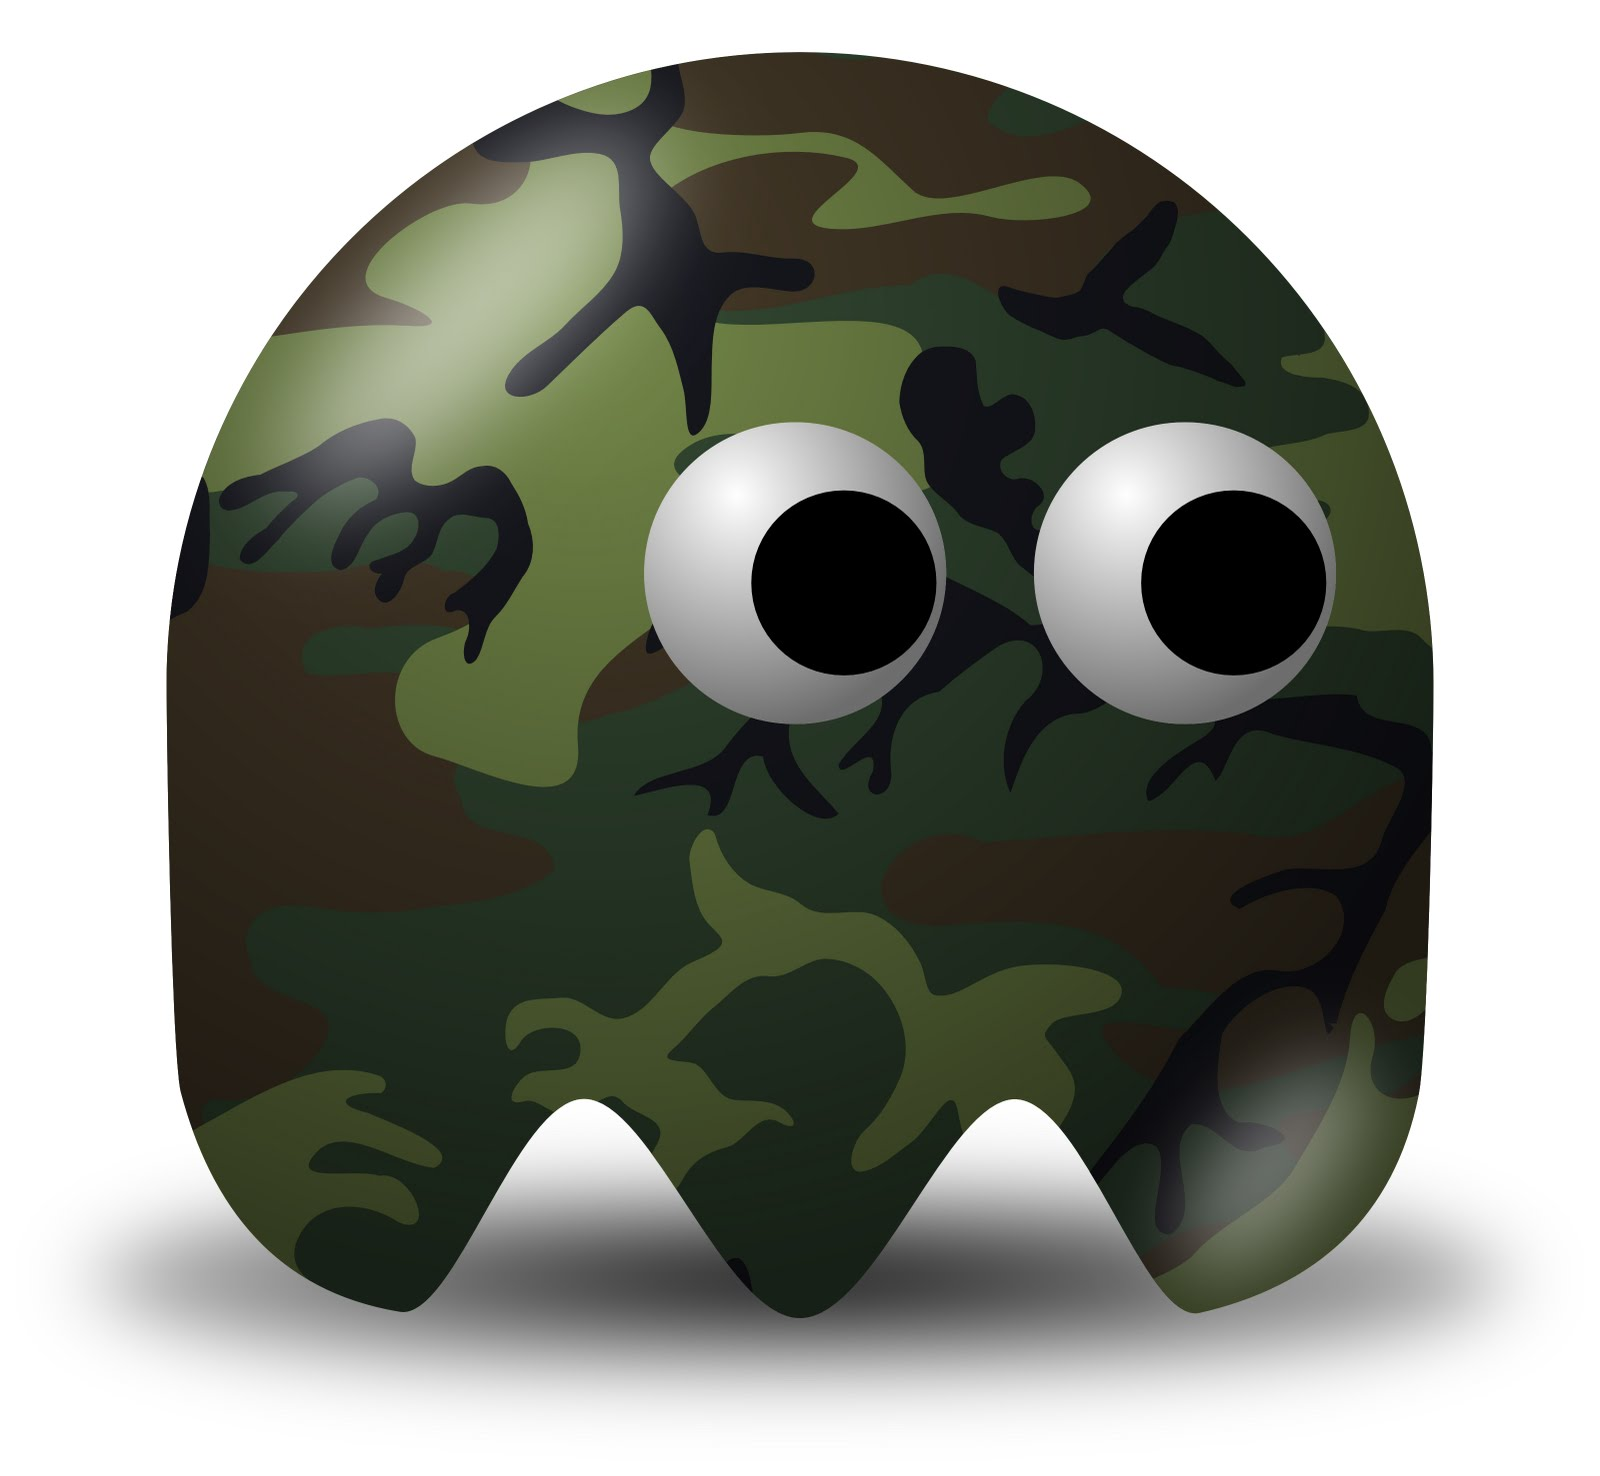 151 Free Military Vector Clipart Illustration Of A Camouflage Soldier Avatar Character pics of erected teens